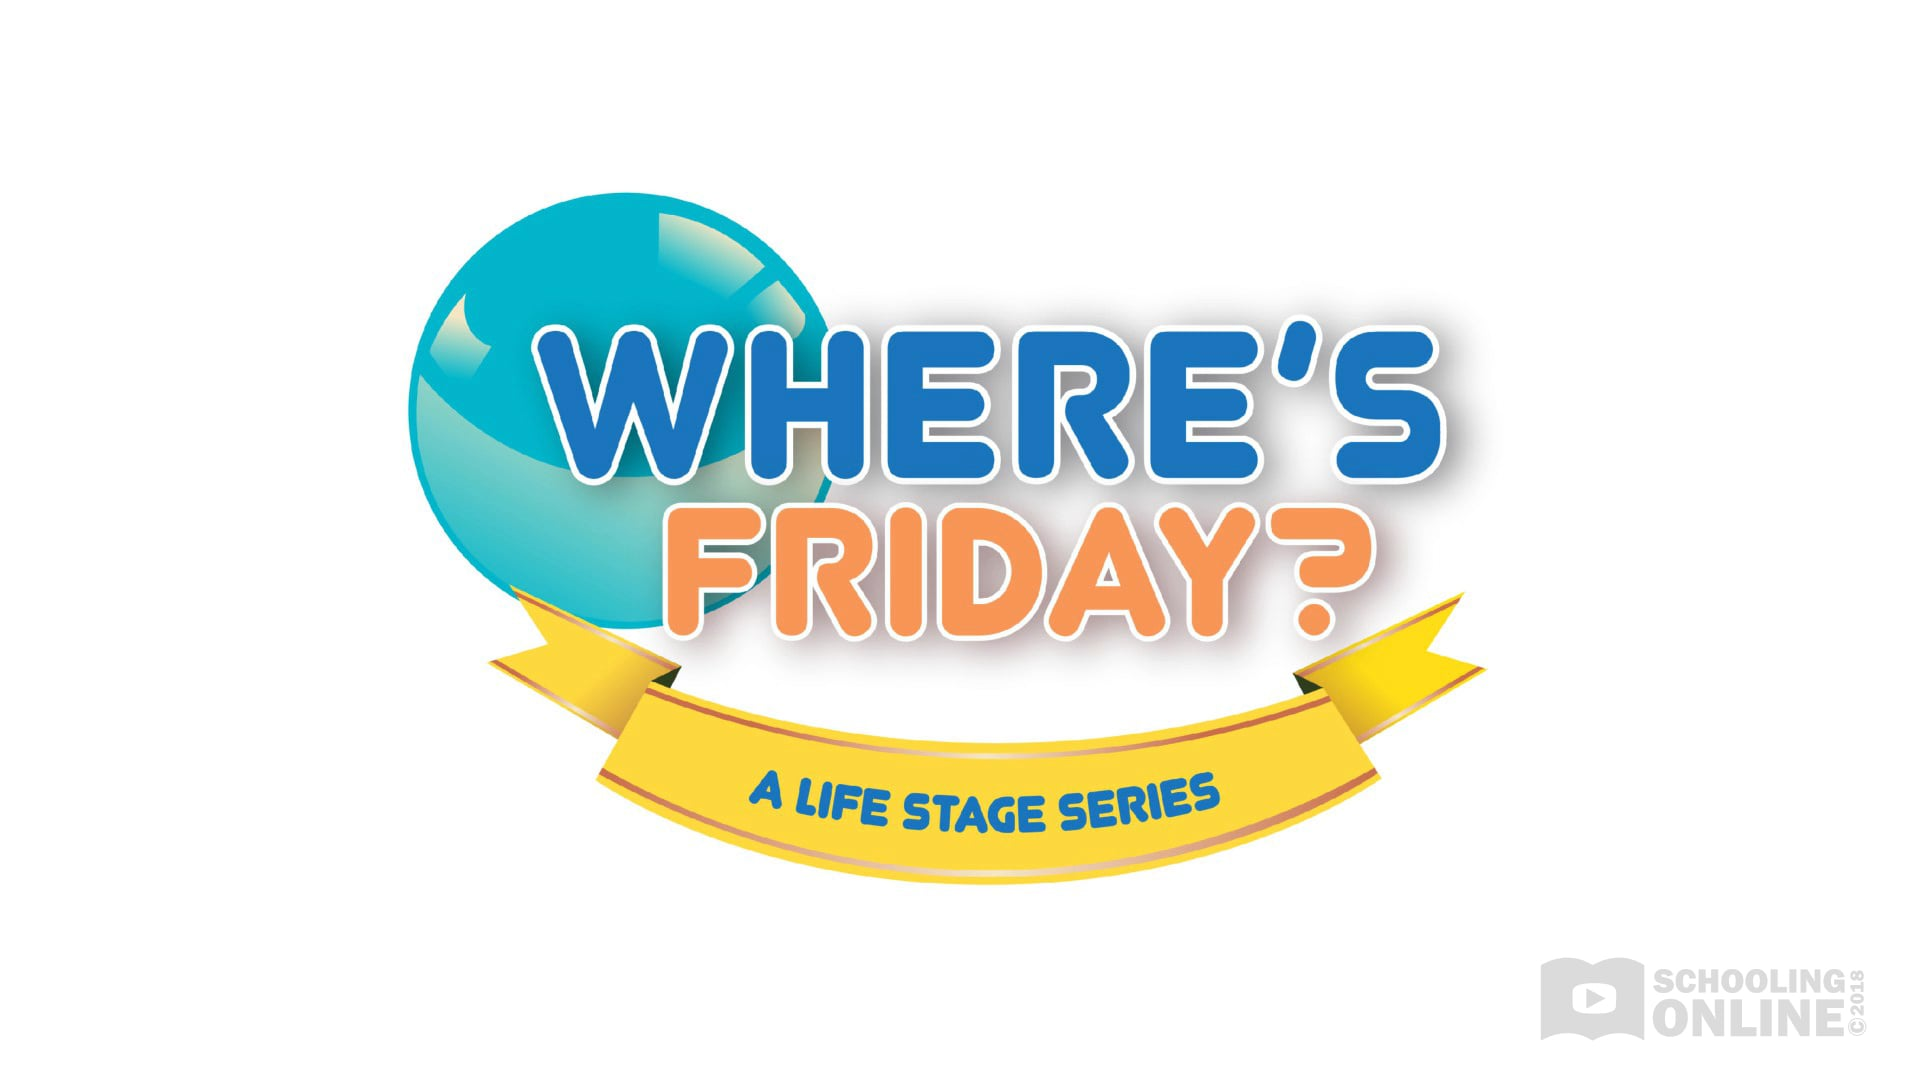 Where's Friday? - The Life Stage Series